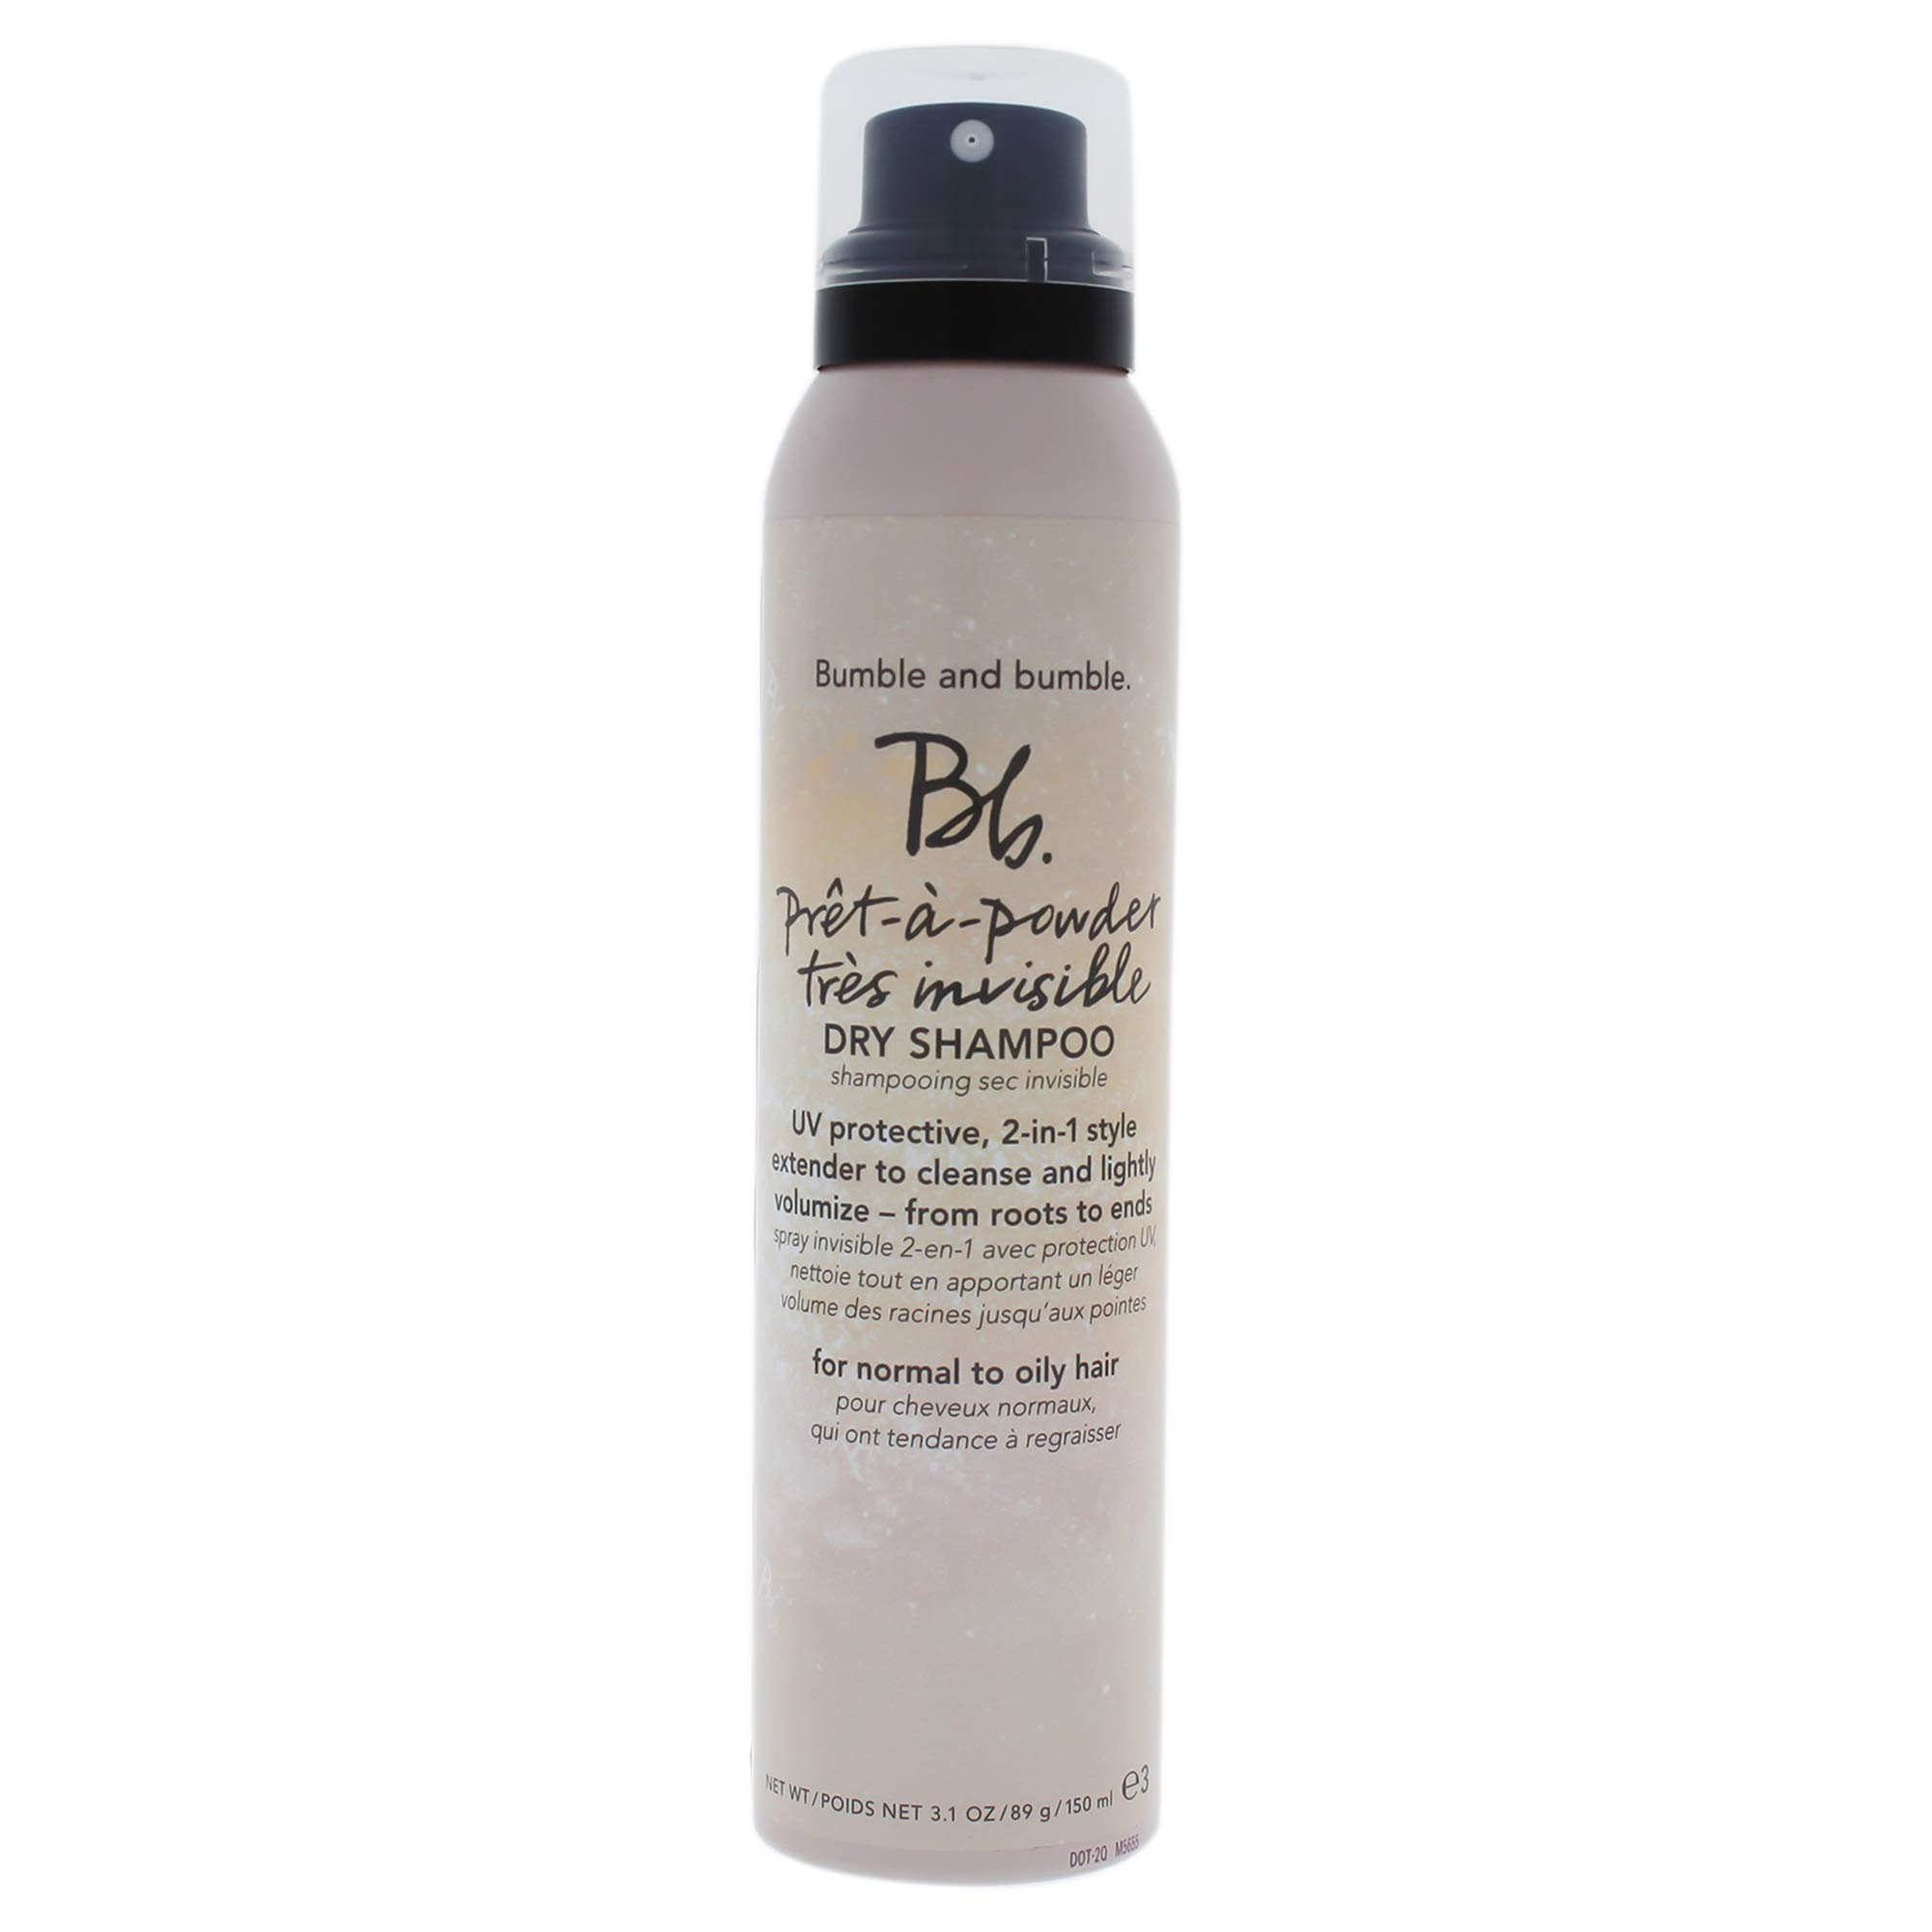 Bumble and Bumble Pret-a-Powder Tres Invisible Dry Shampoo, 3.1 Ounce by Bumble and Bumble